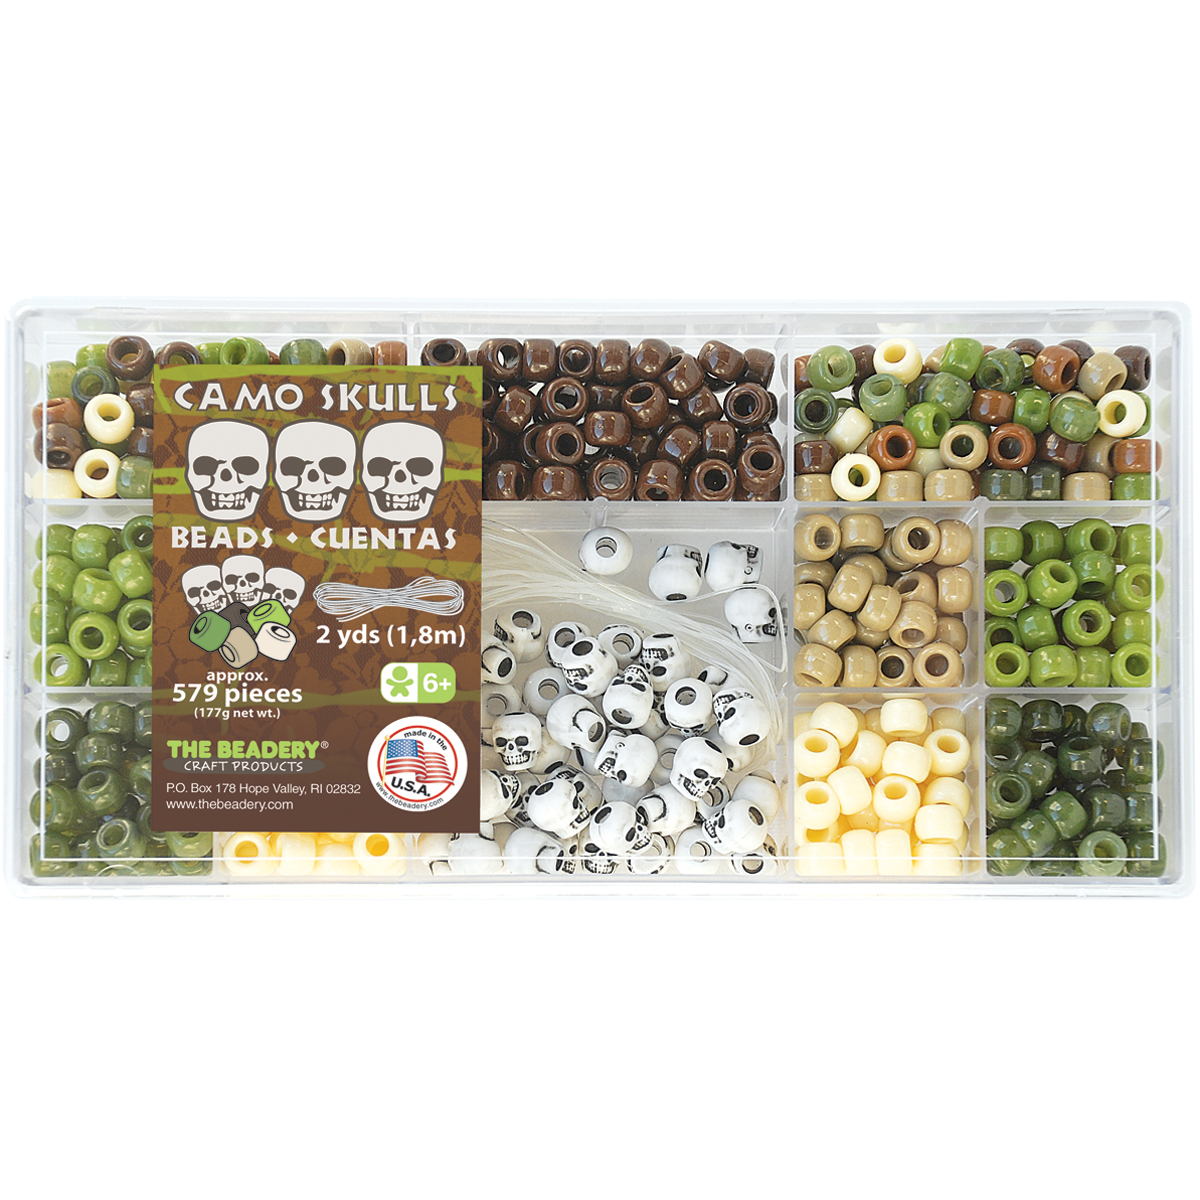 Bead Box Kit 6.25oz-Camo Skulls